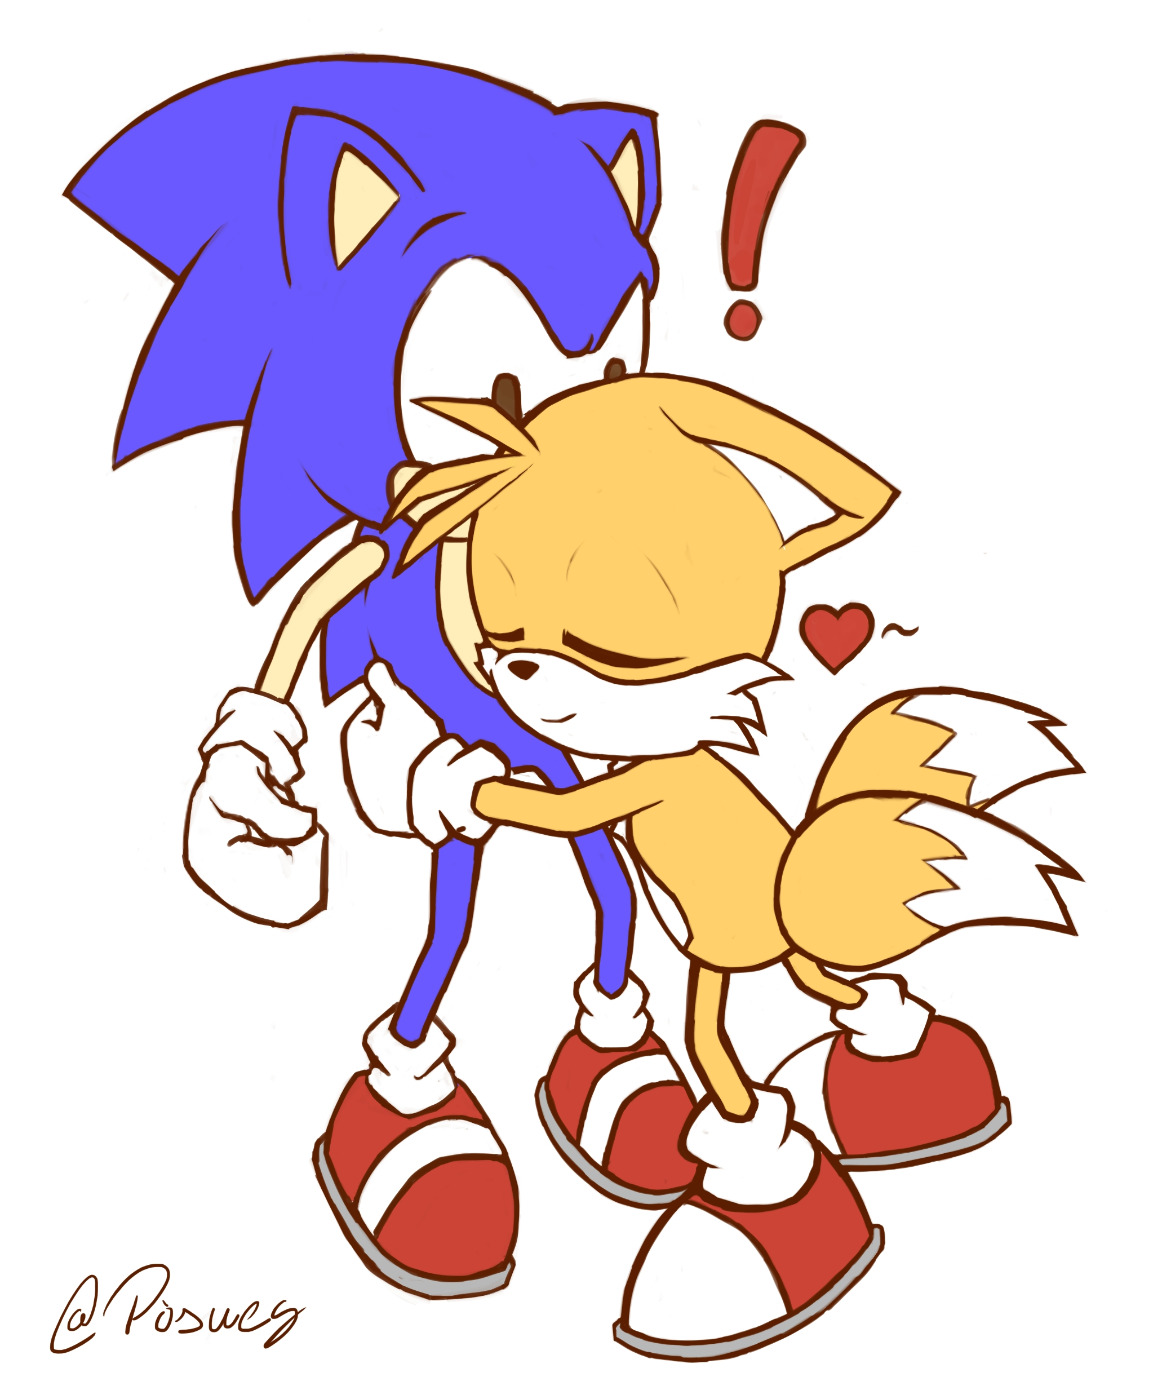 If sonic was gay